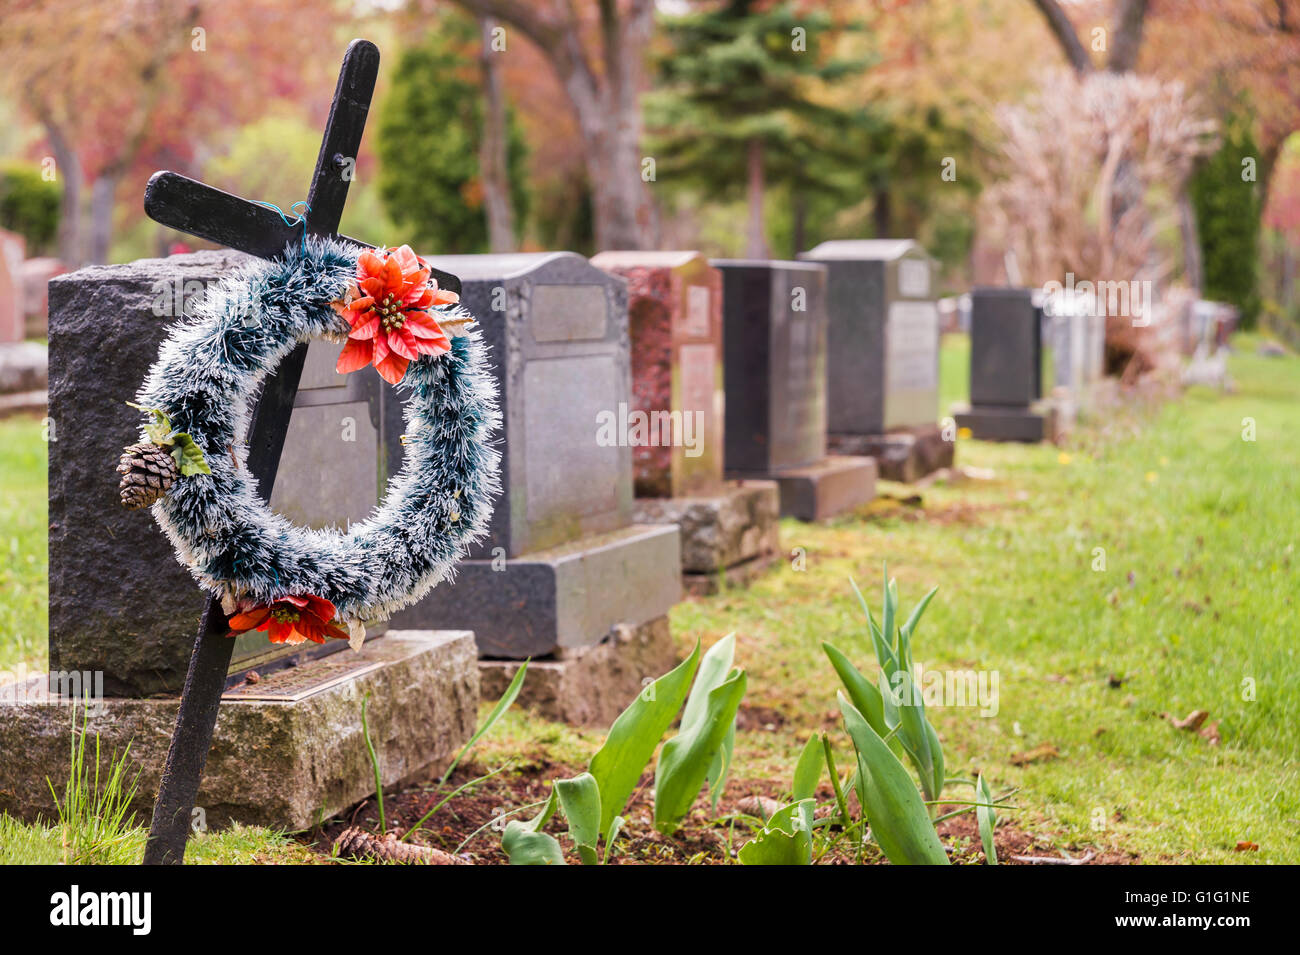 Funeral wreath with red flowers on a cross, in a cemetary, with many headstones in the background. - Stock Image